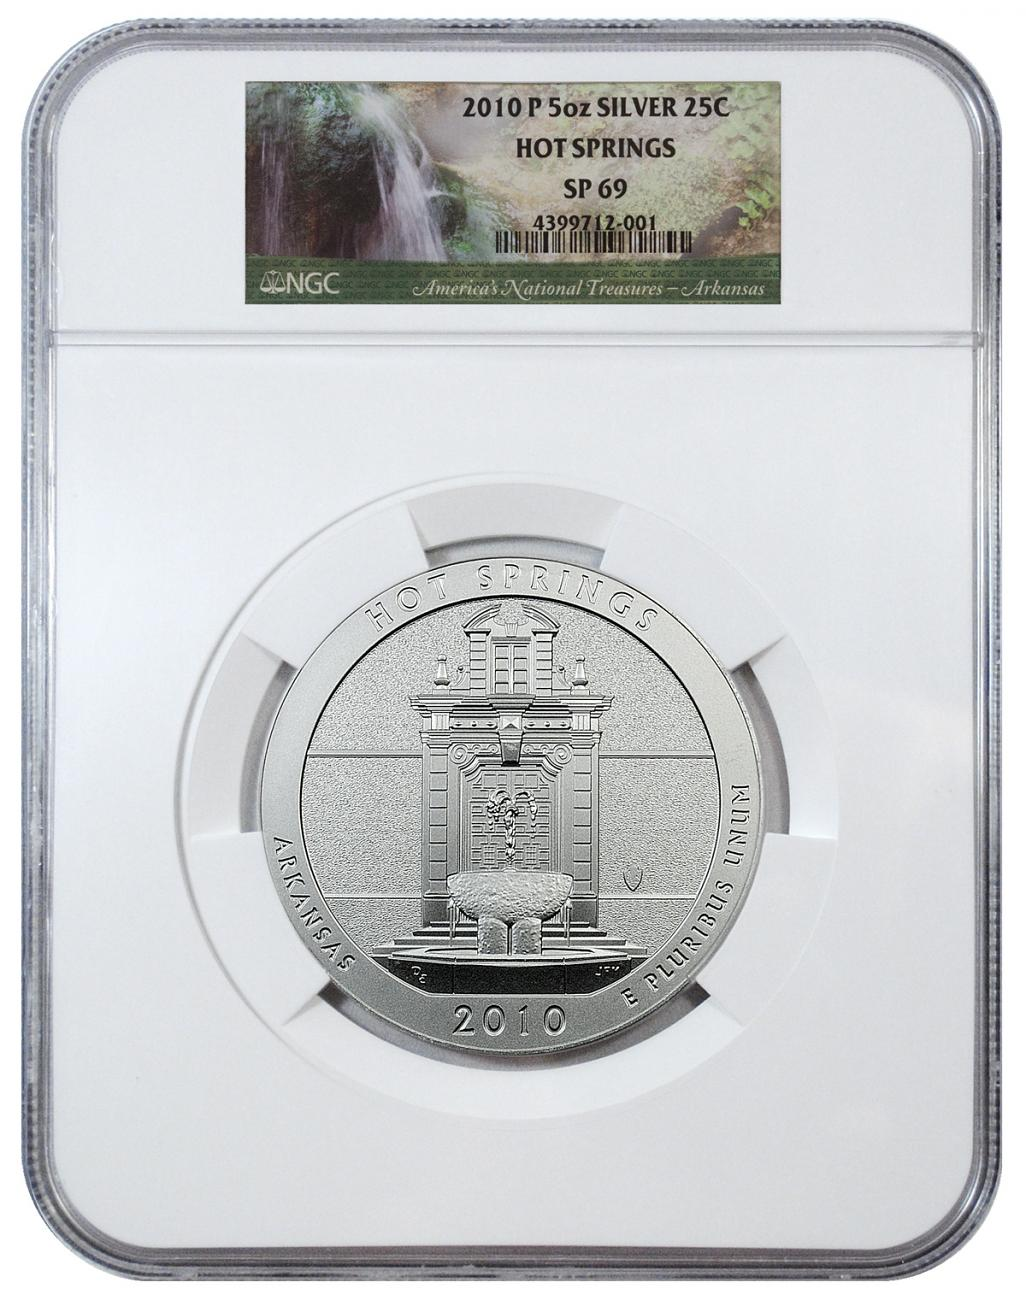 2010-P Hot Springs 5 oz. Silver America the Beautiful Specimen Coin NGC SP69